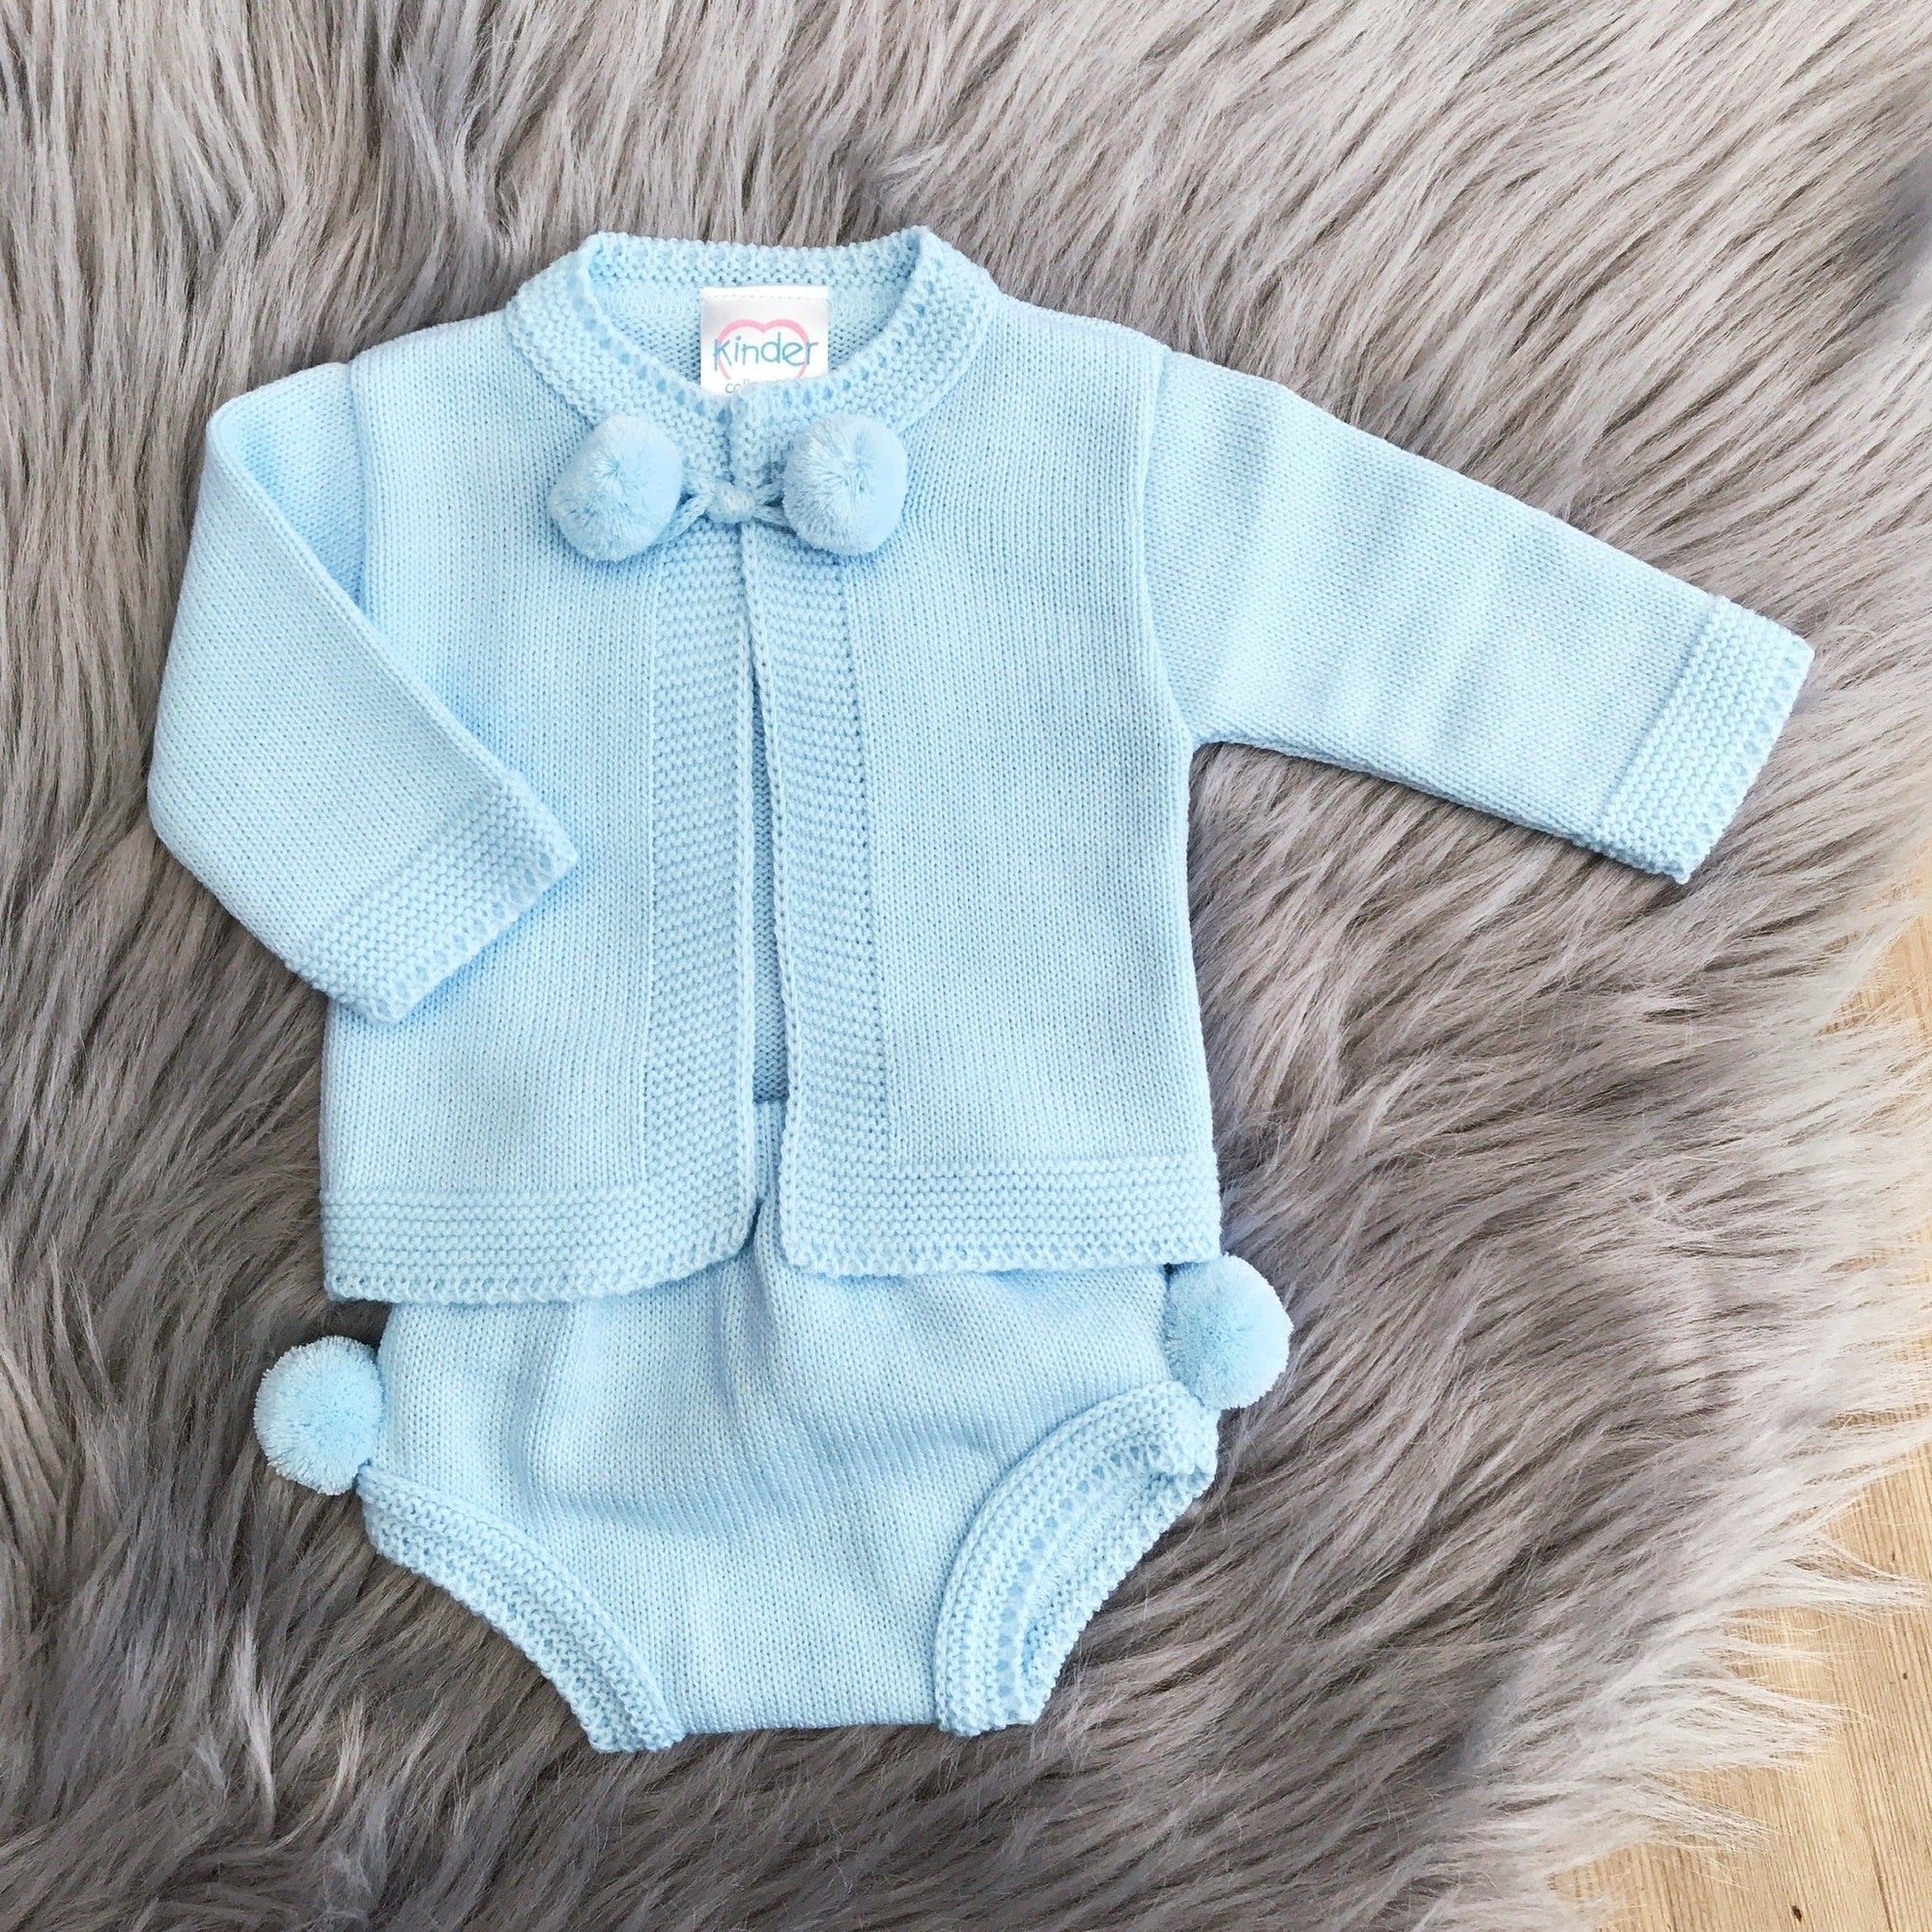 Kinder Blue Knitted Pom Pom Cardigan & Pants | Millie and John